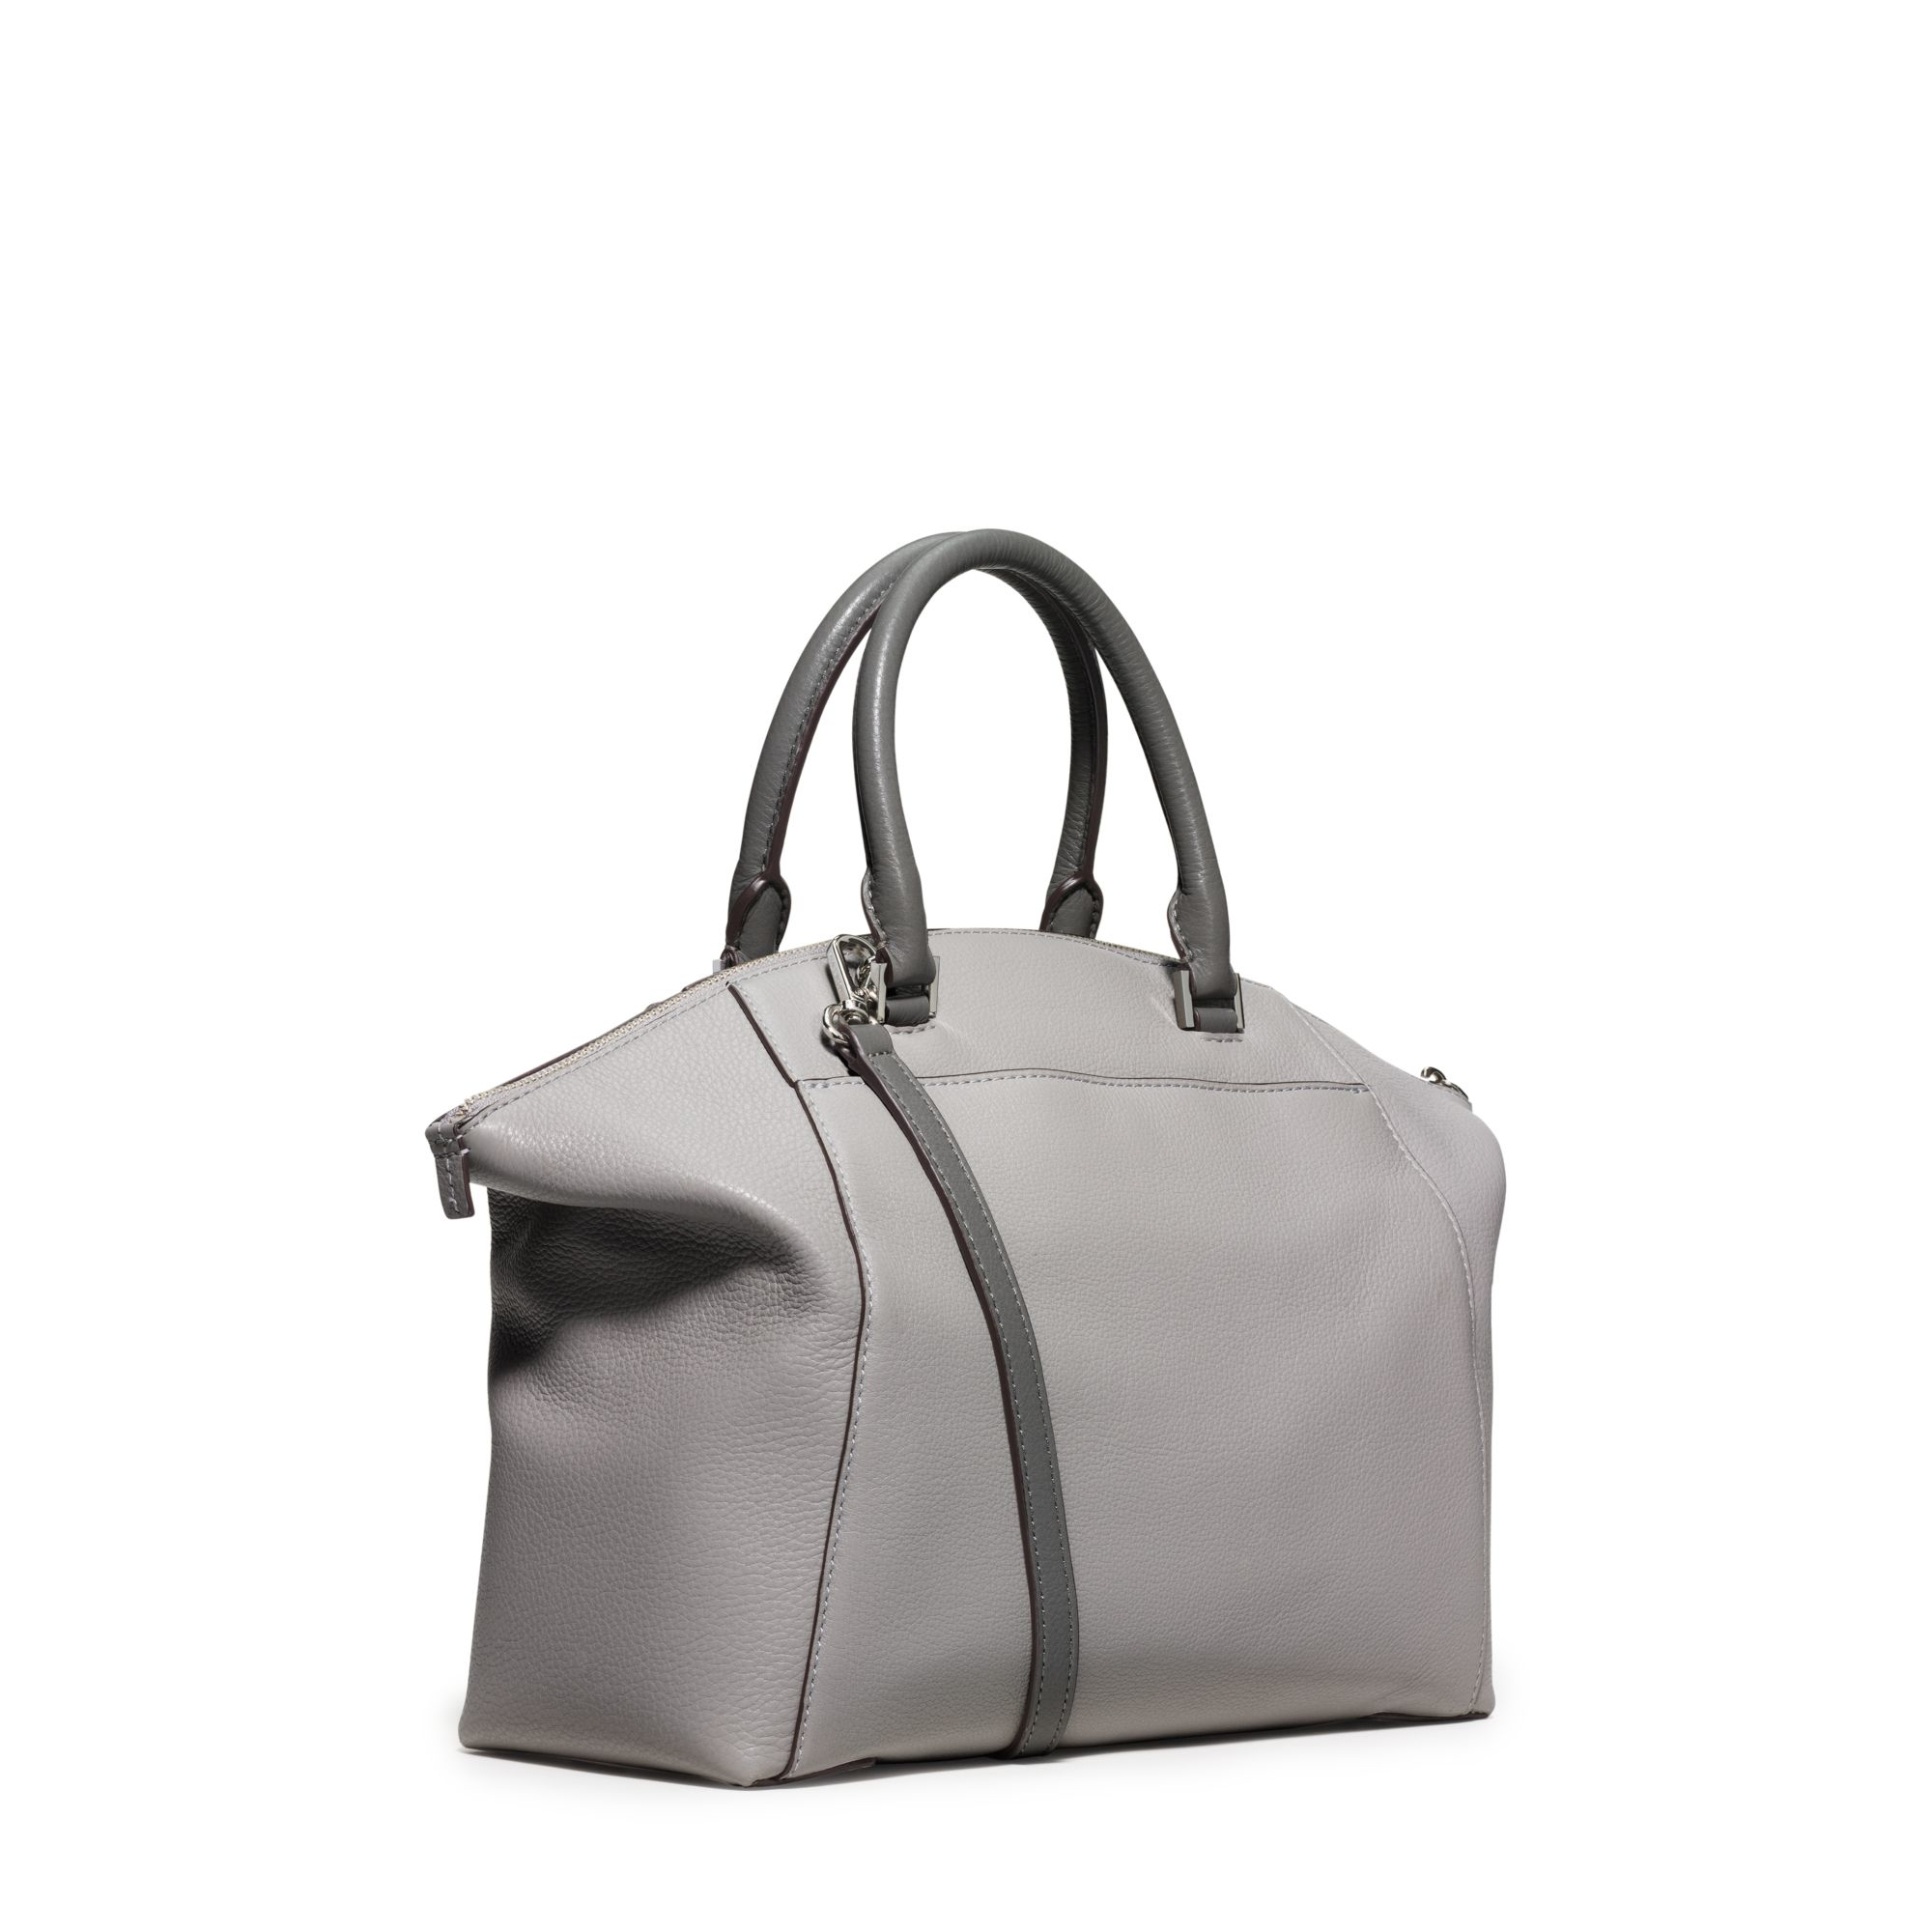 ... canada lyst michael kors riley large leather satchel in gray 8b963 b9d9d e518b5f99c6bb